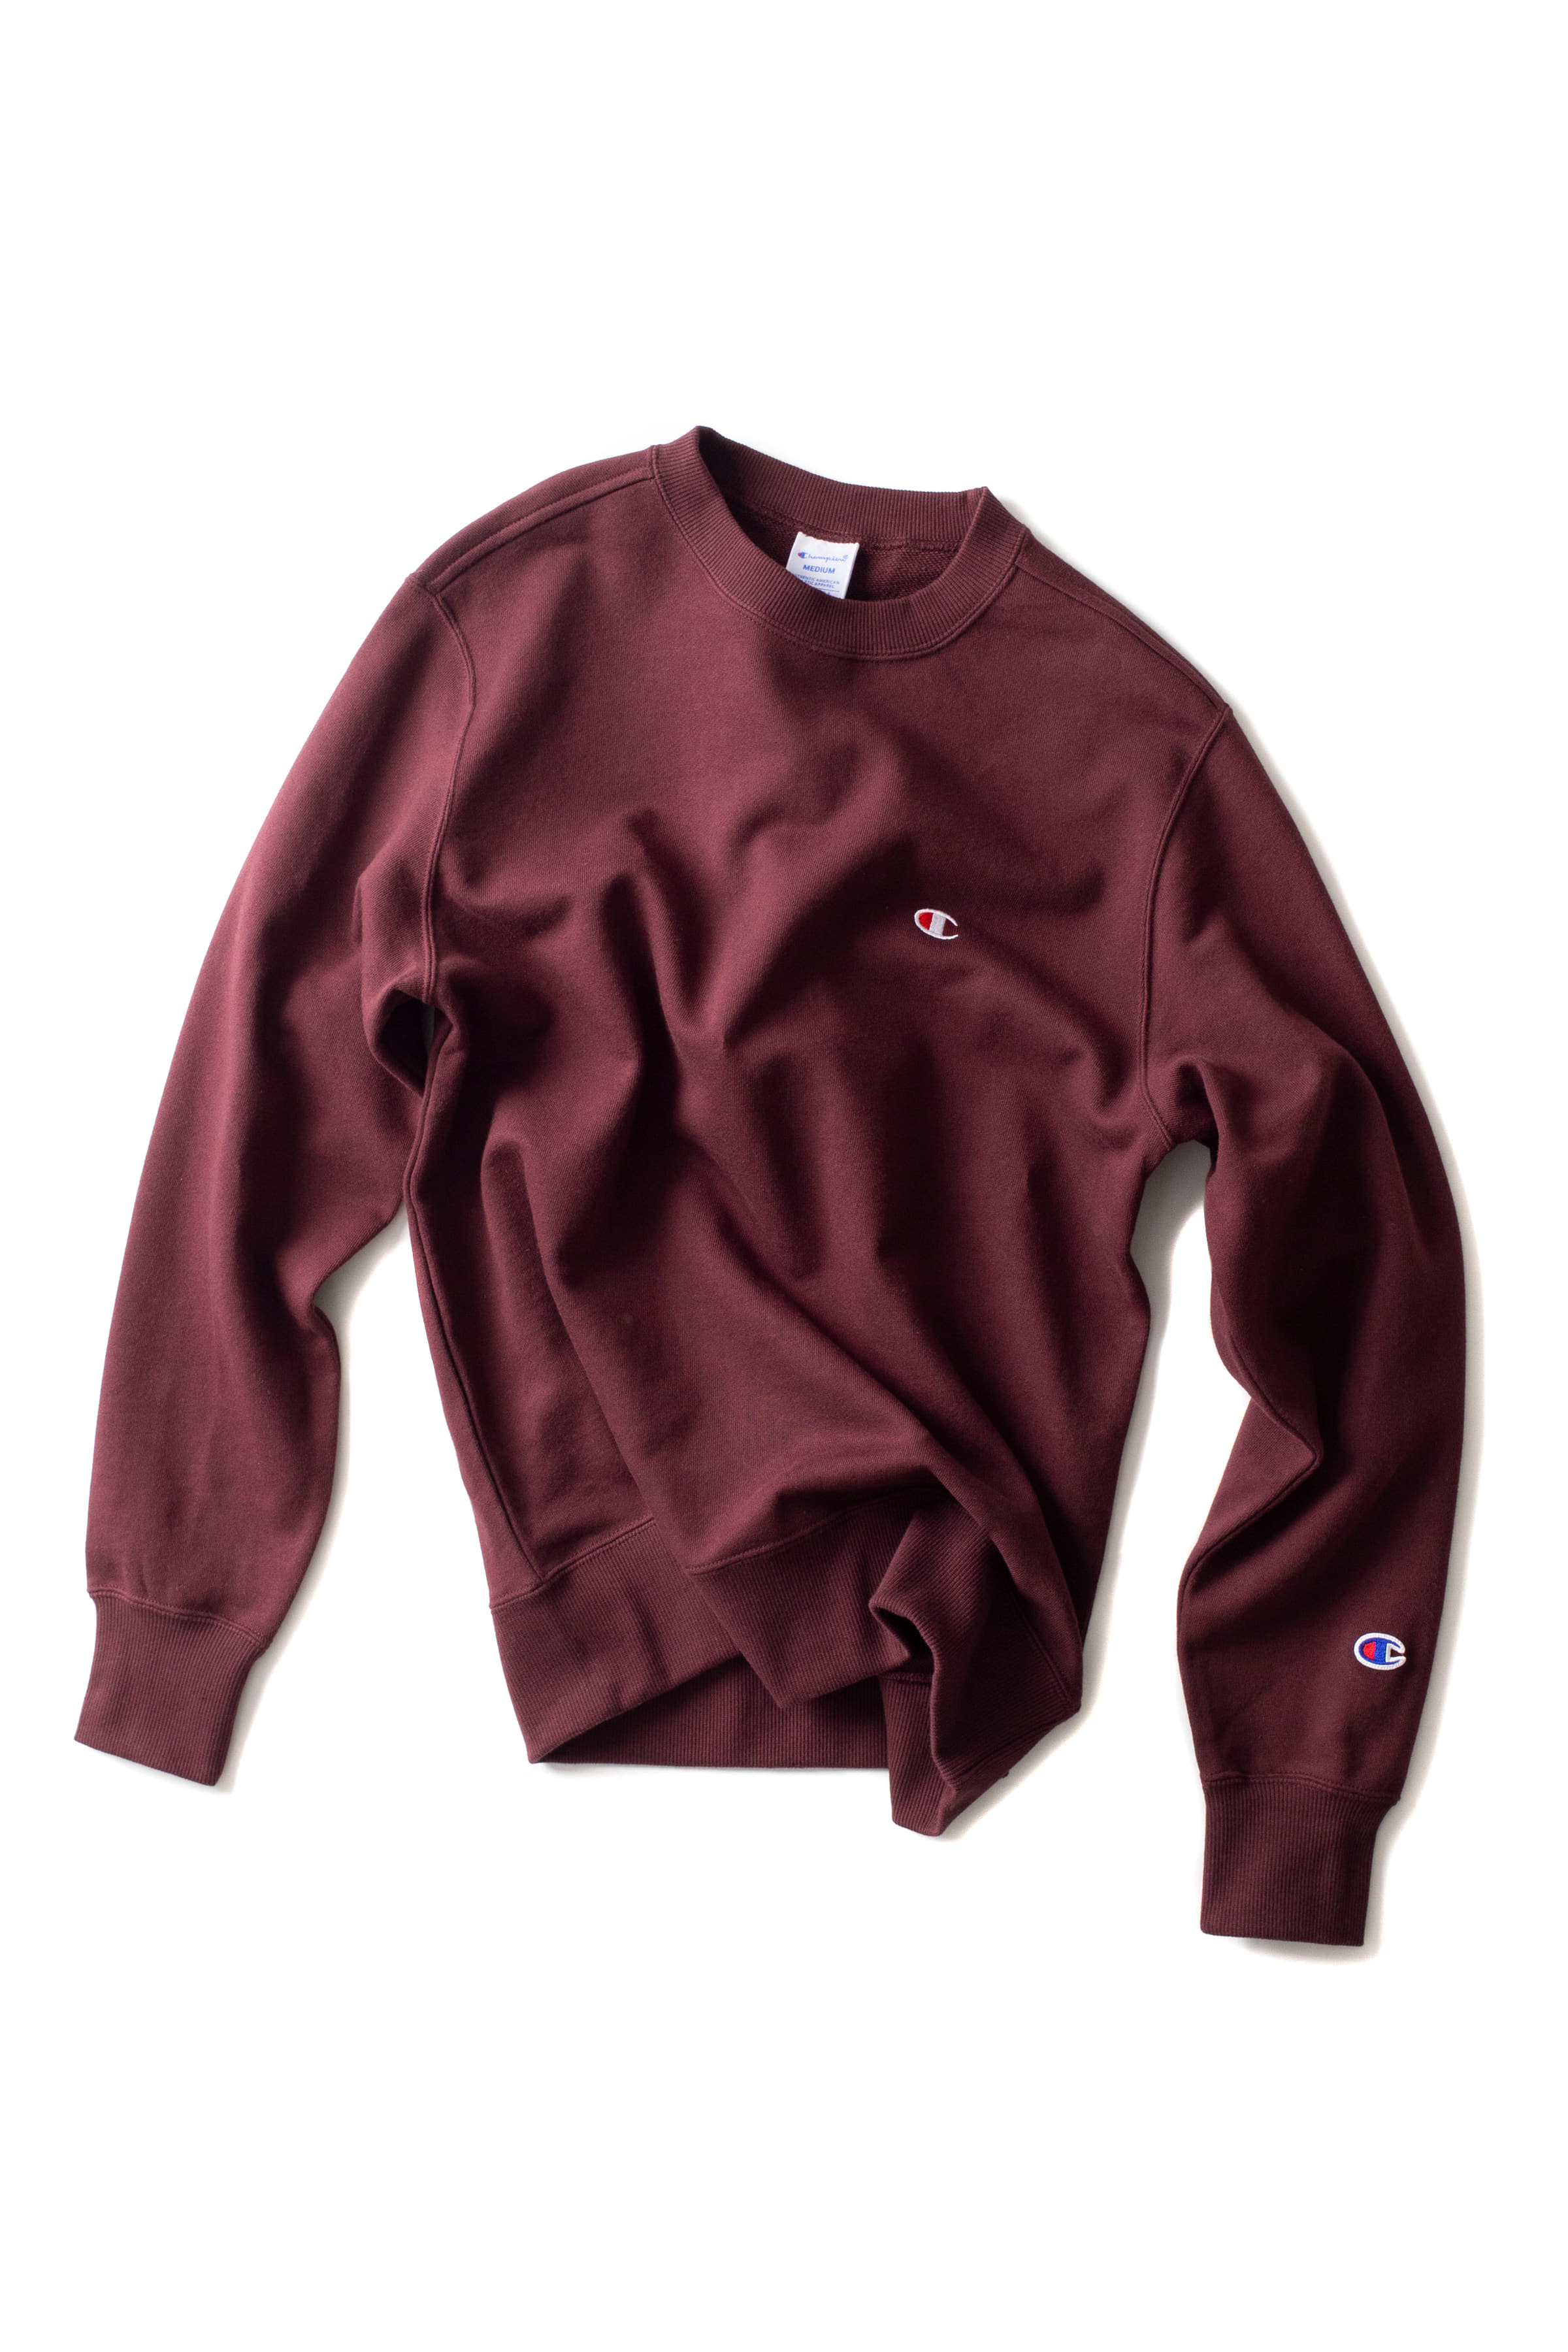 Champion : Basic Crewneck Sweat Shirt (Maroon)